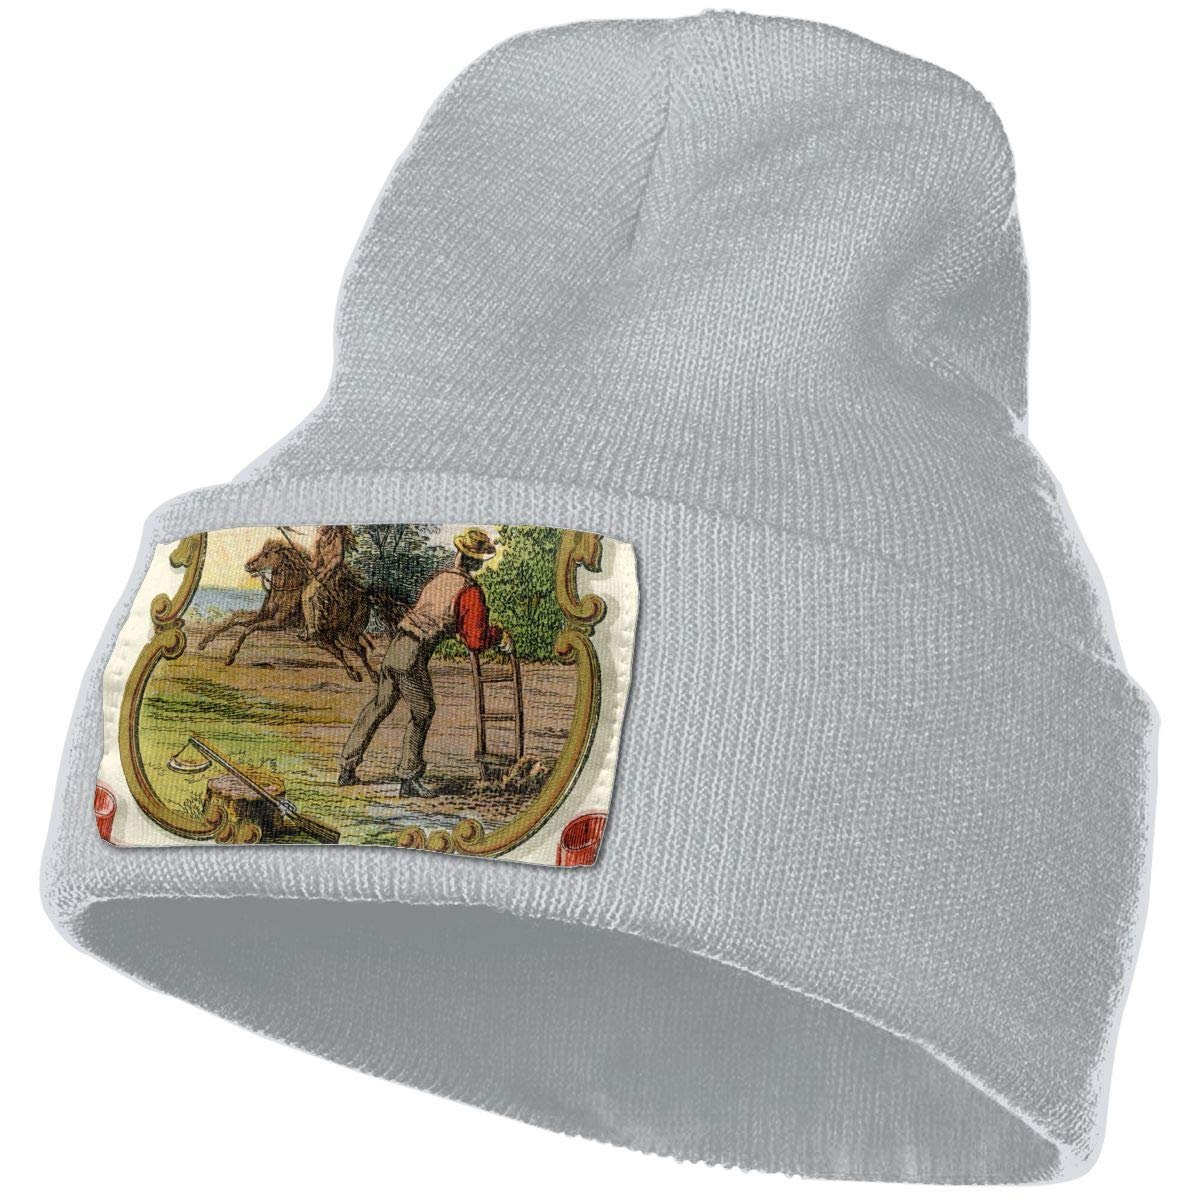 QZqDQ Minnesota State Coat of Arms Unisex Fashion Knitted Hat Luxury Hip-Hop Cap